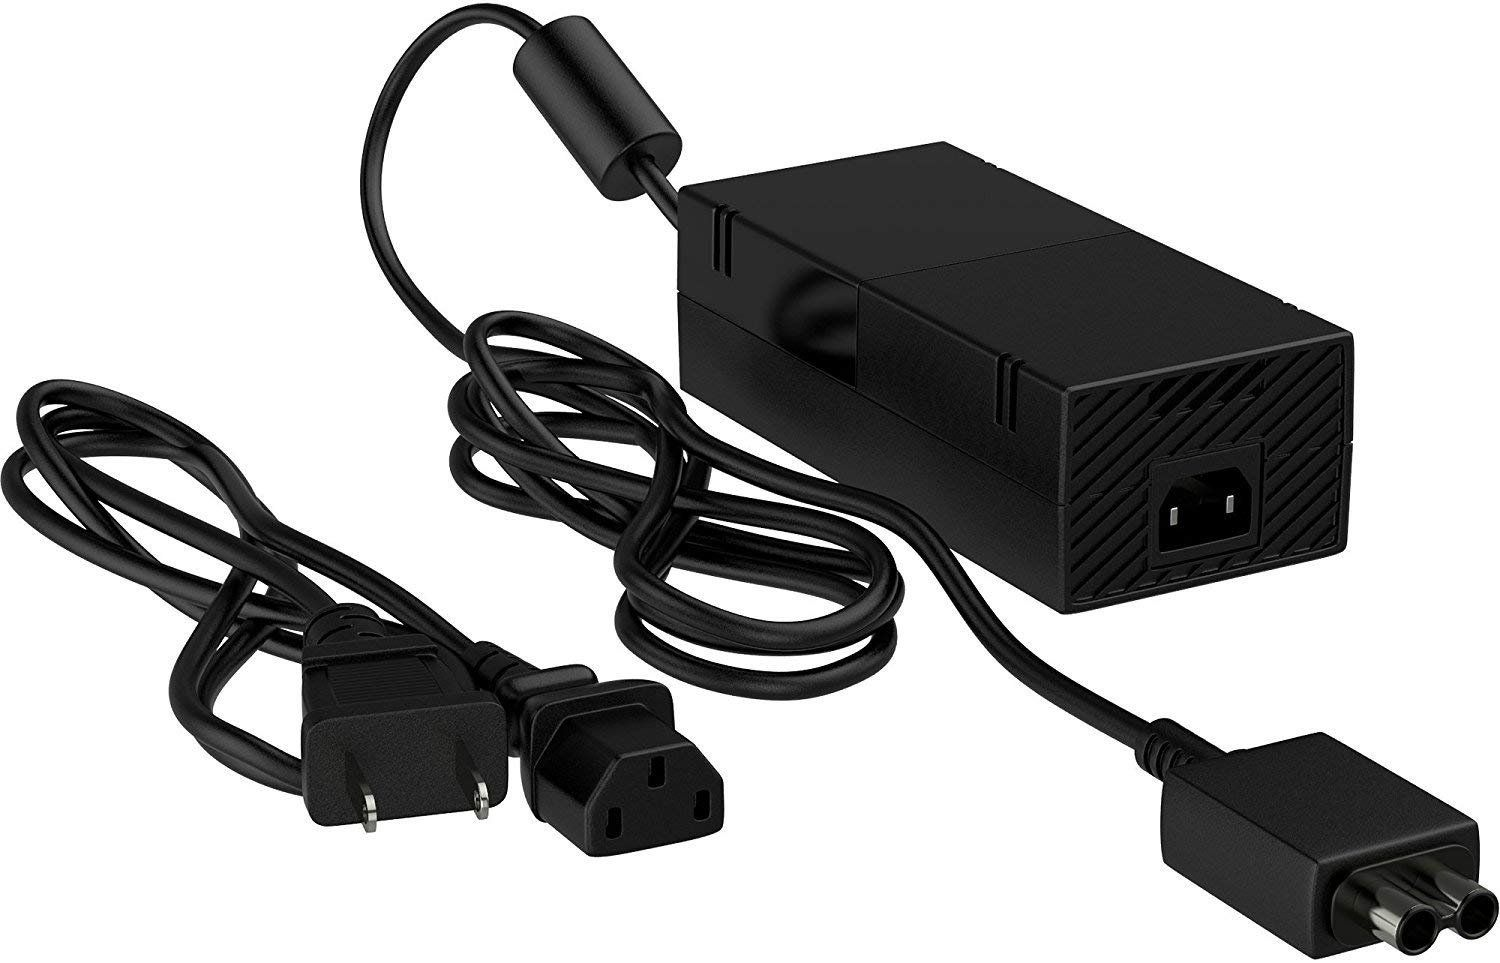 ortz xbox one power supply enhanced quiet version ac adapter cord best for charging brick style great charger accessory kit with cable version  [ 1500 x 963 Pixel ]